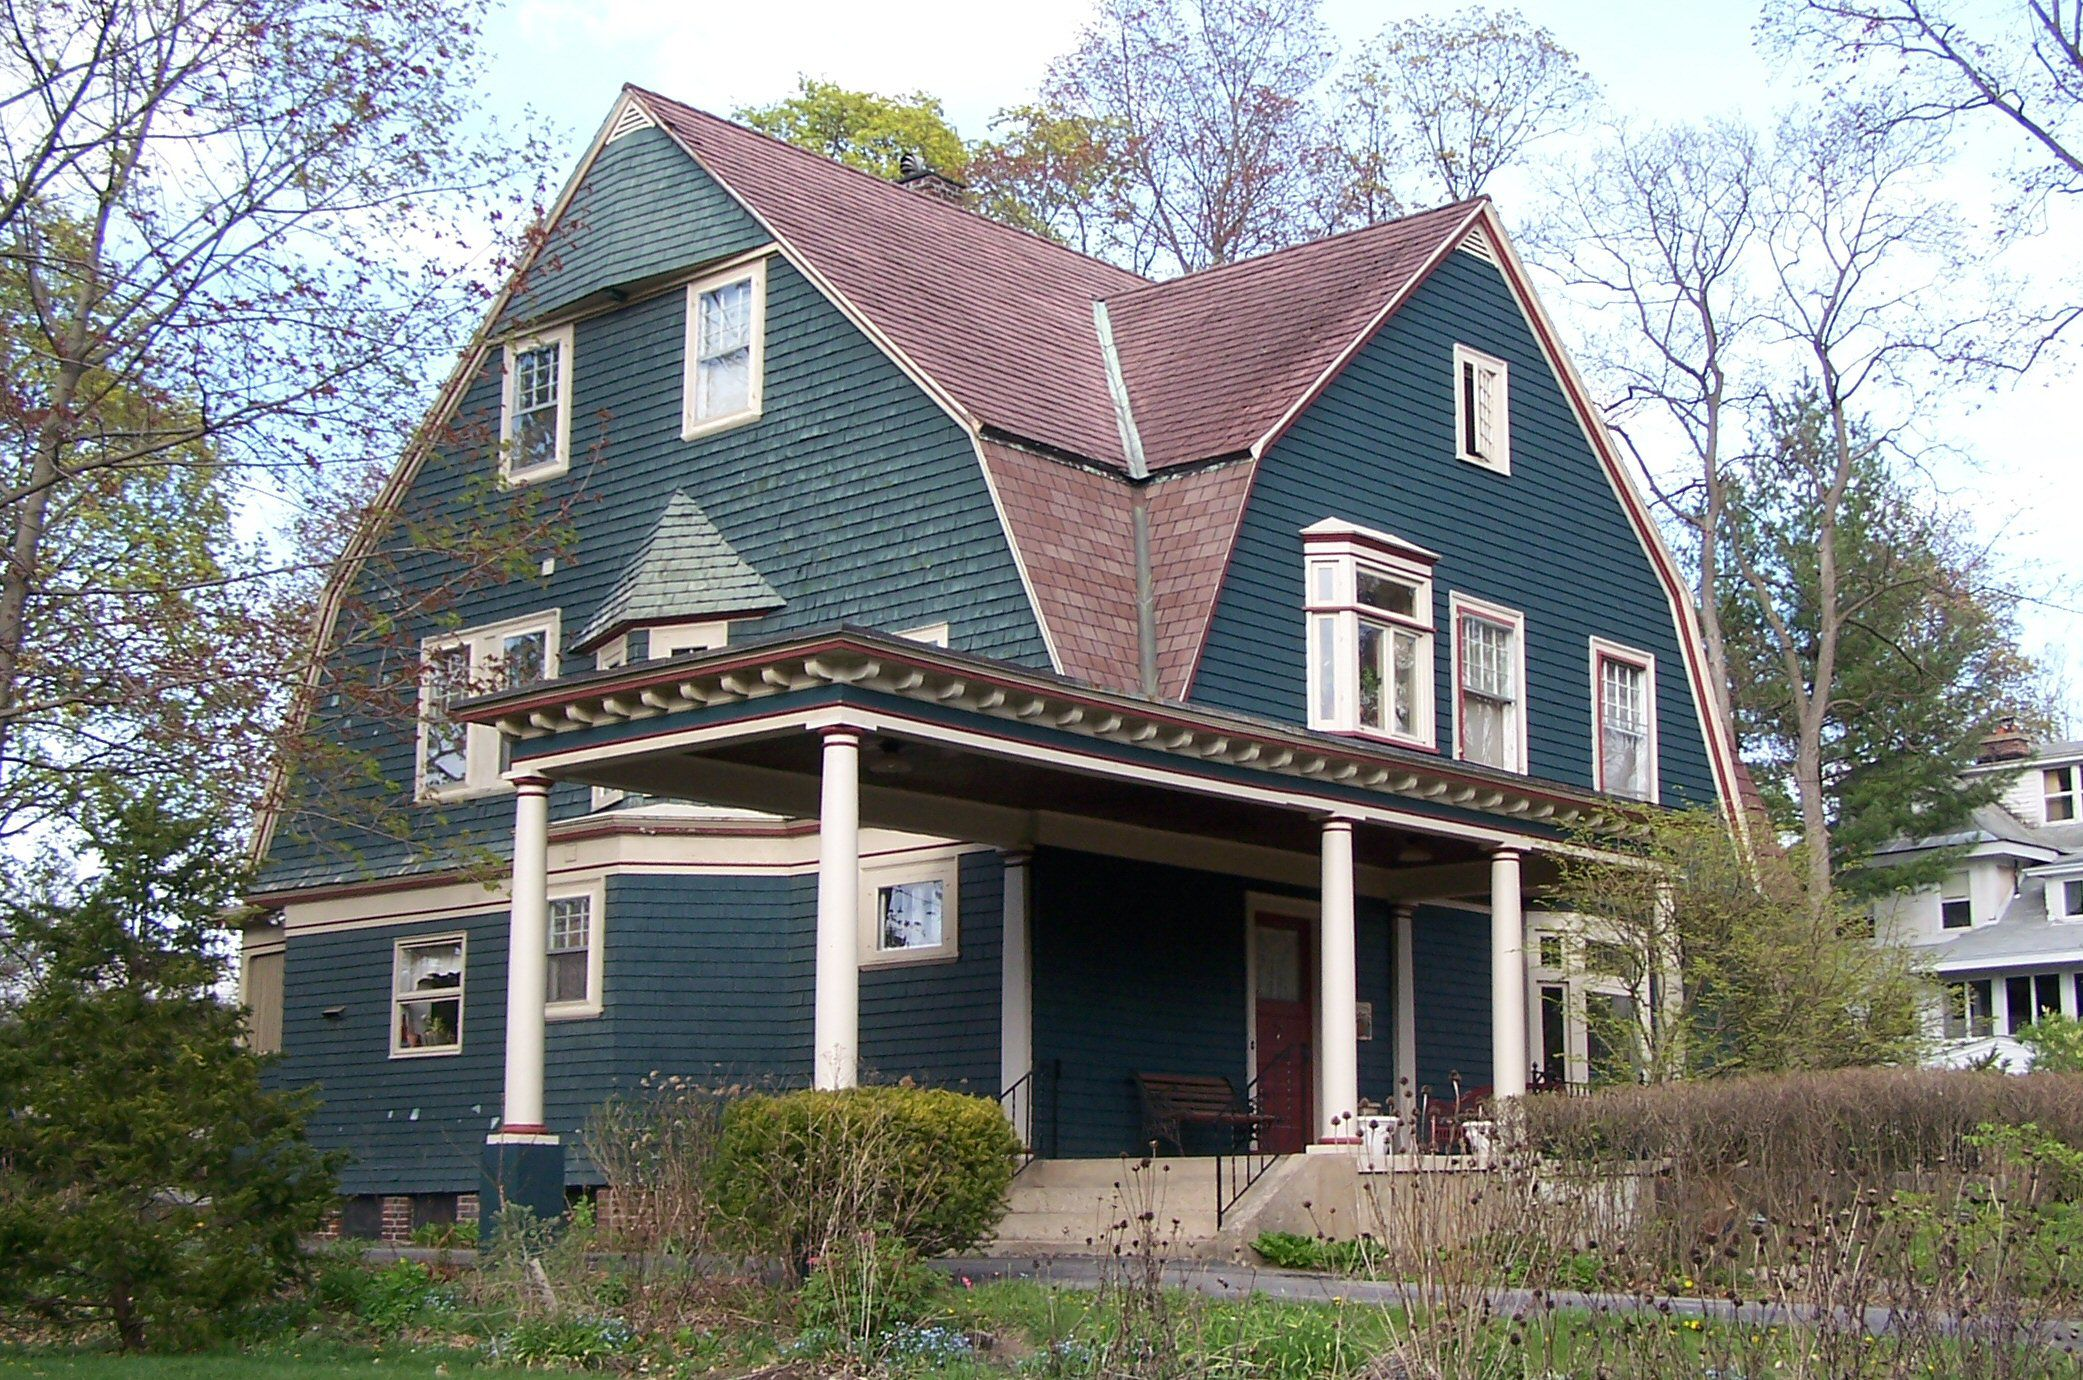 large, green shingled home, 2 1/2 stories, brown shingled cross-gambrel roof, front porch extends into a car port